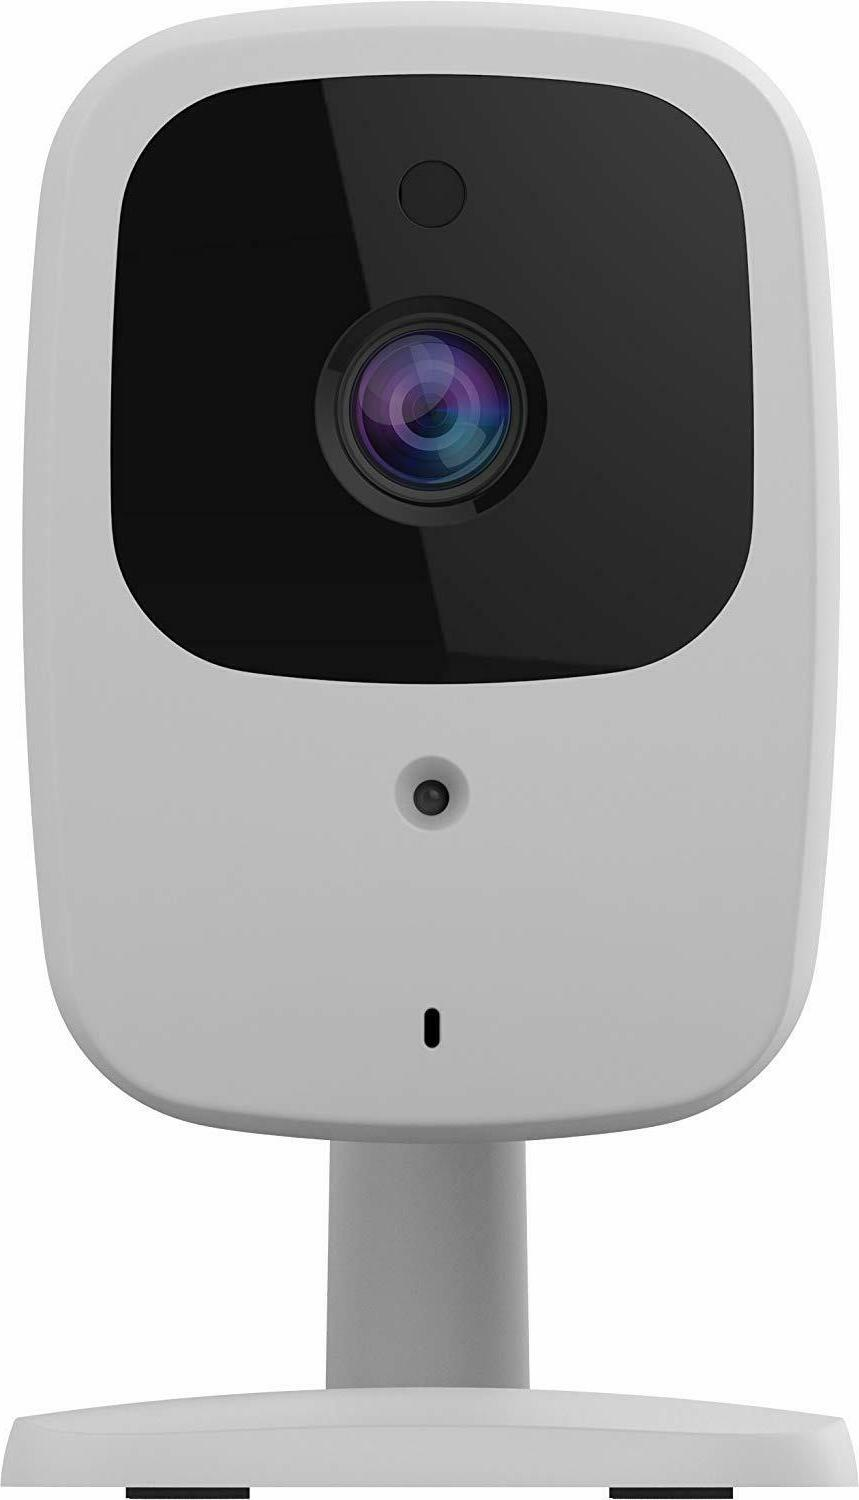 wcw200 wireless indoor hd camera